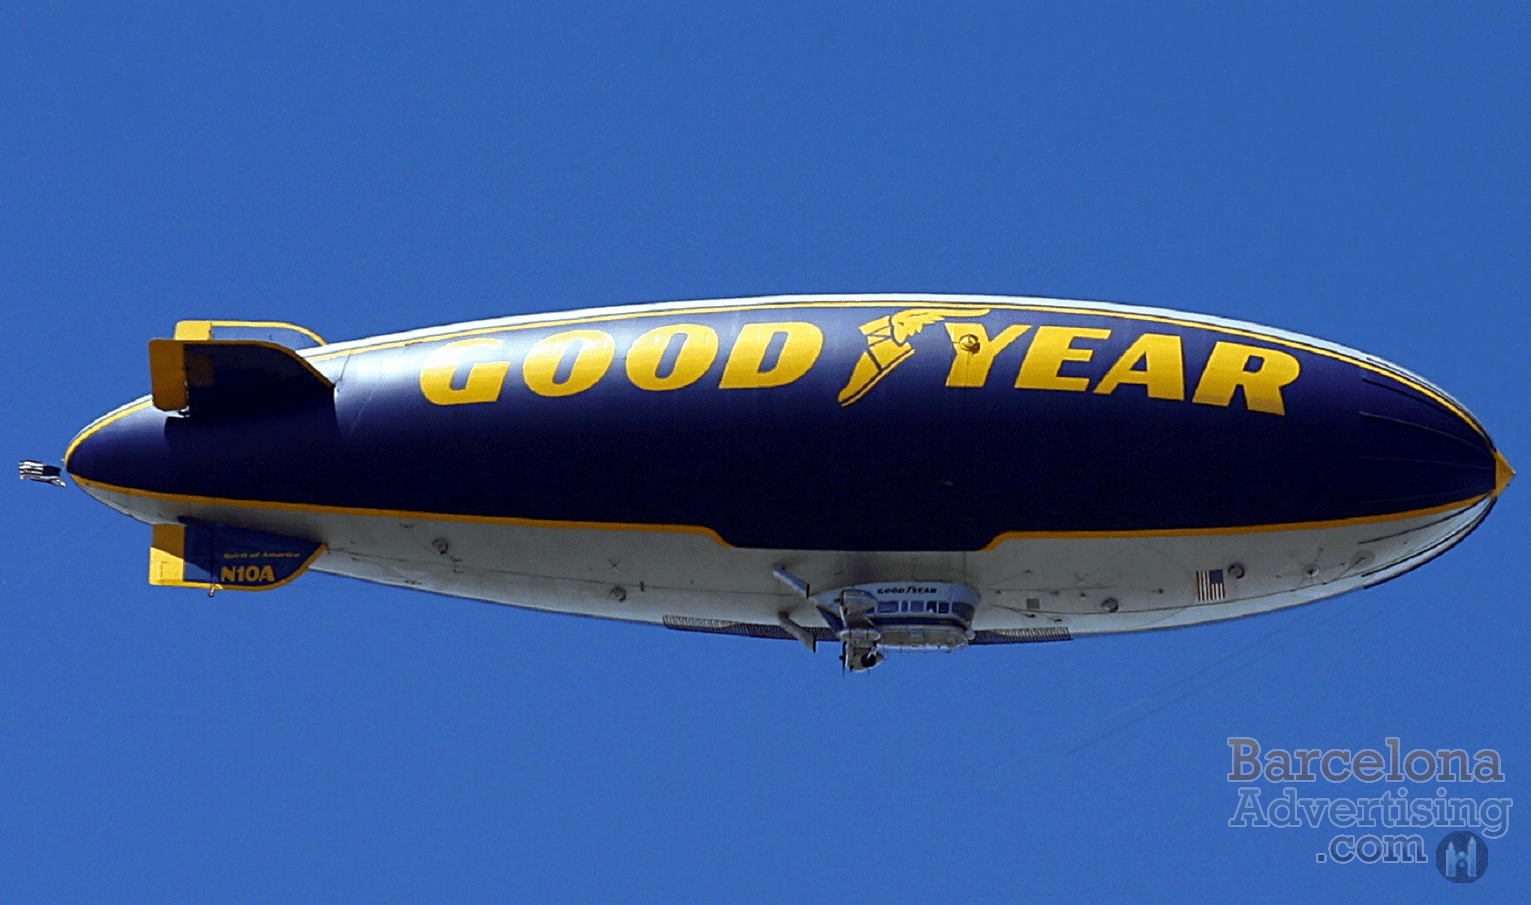 w-barcelona-Blimp-Advertising